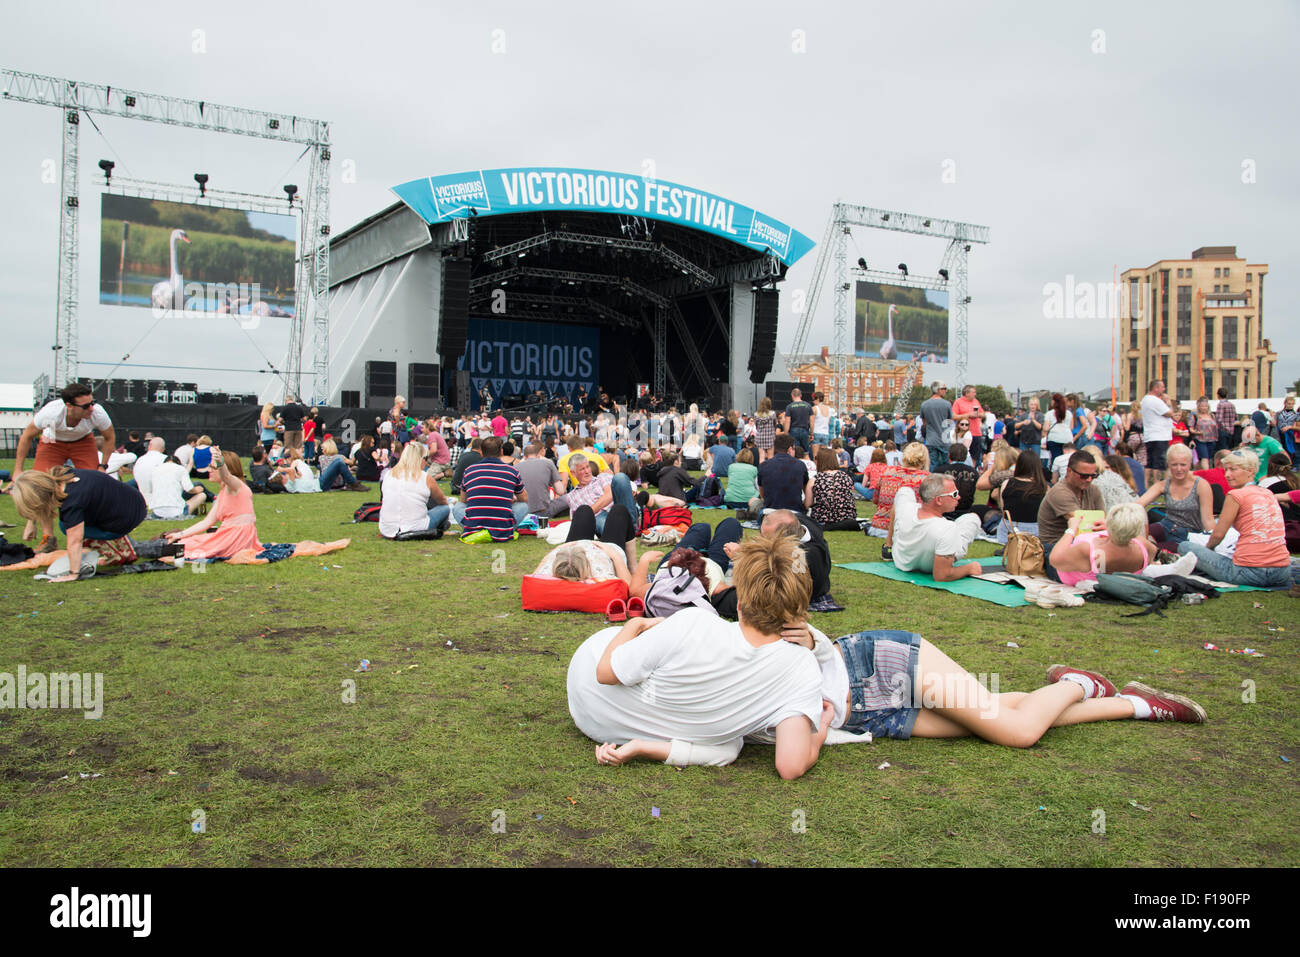 Portsmouth, UK. 29th August 2015. Victorious Festival - Saturday. Large crowds gather at the Common Stage at the Stock Photo